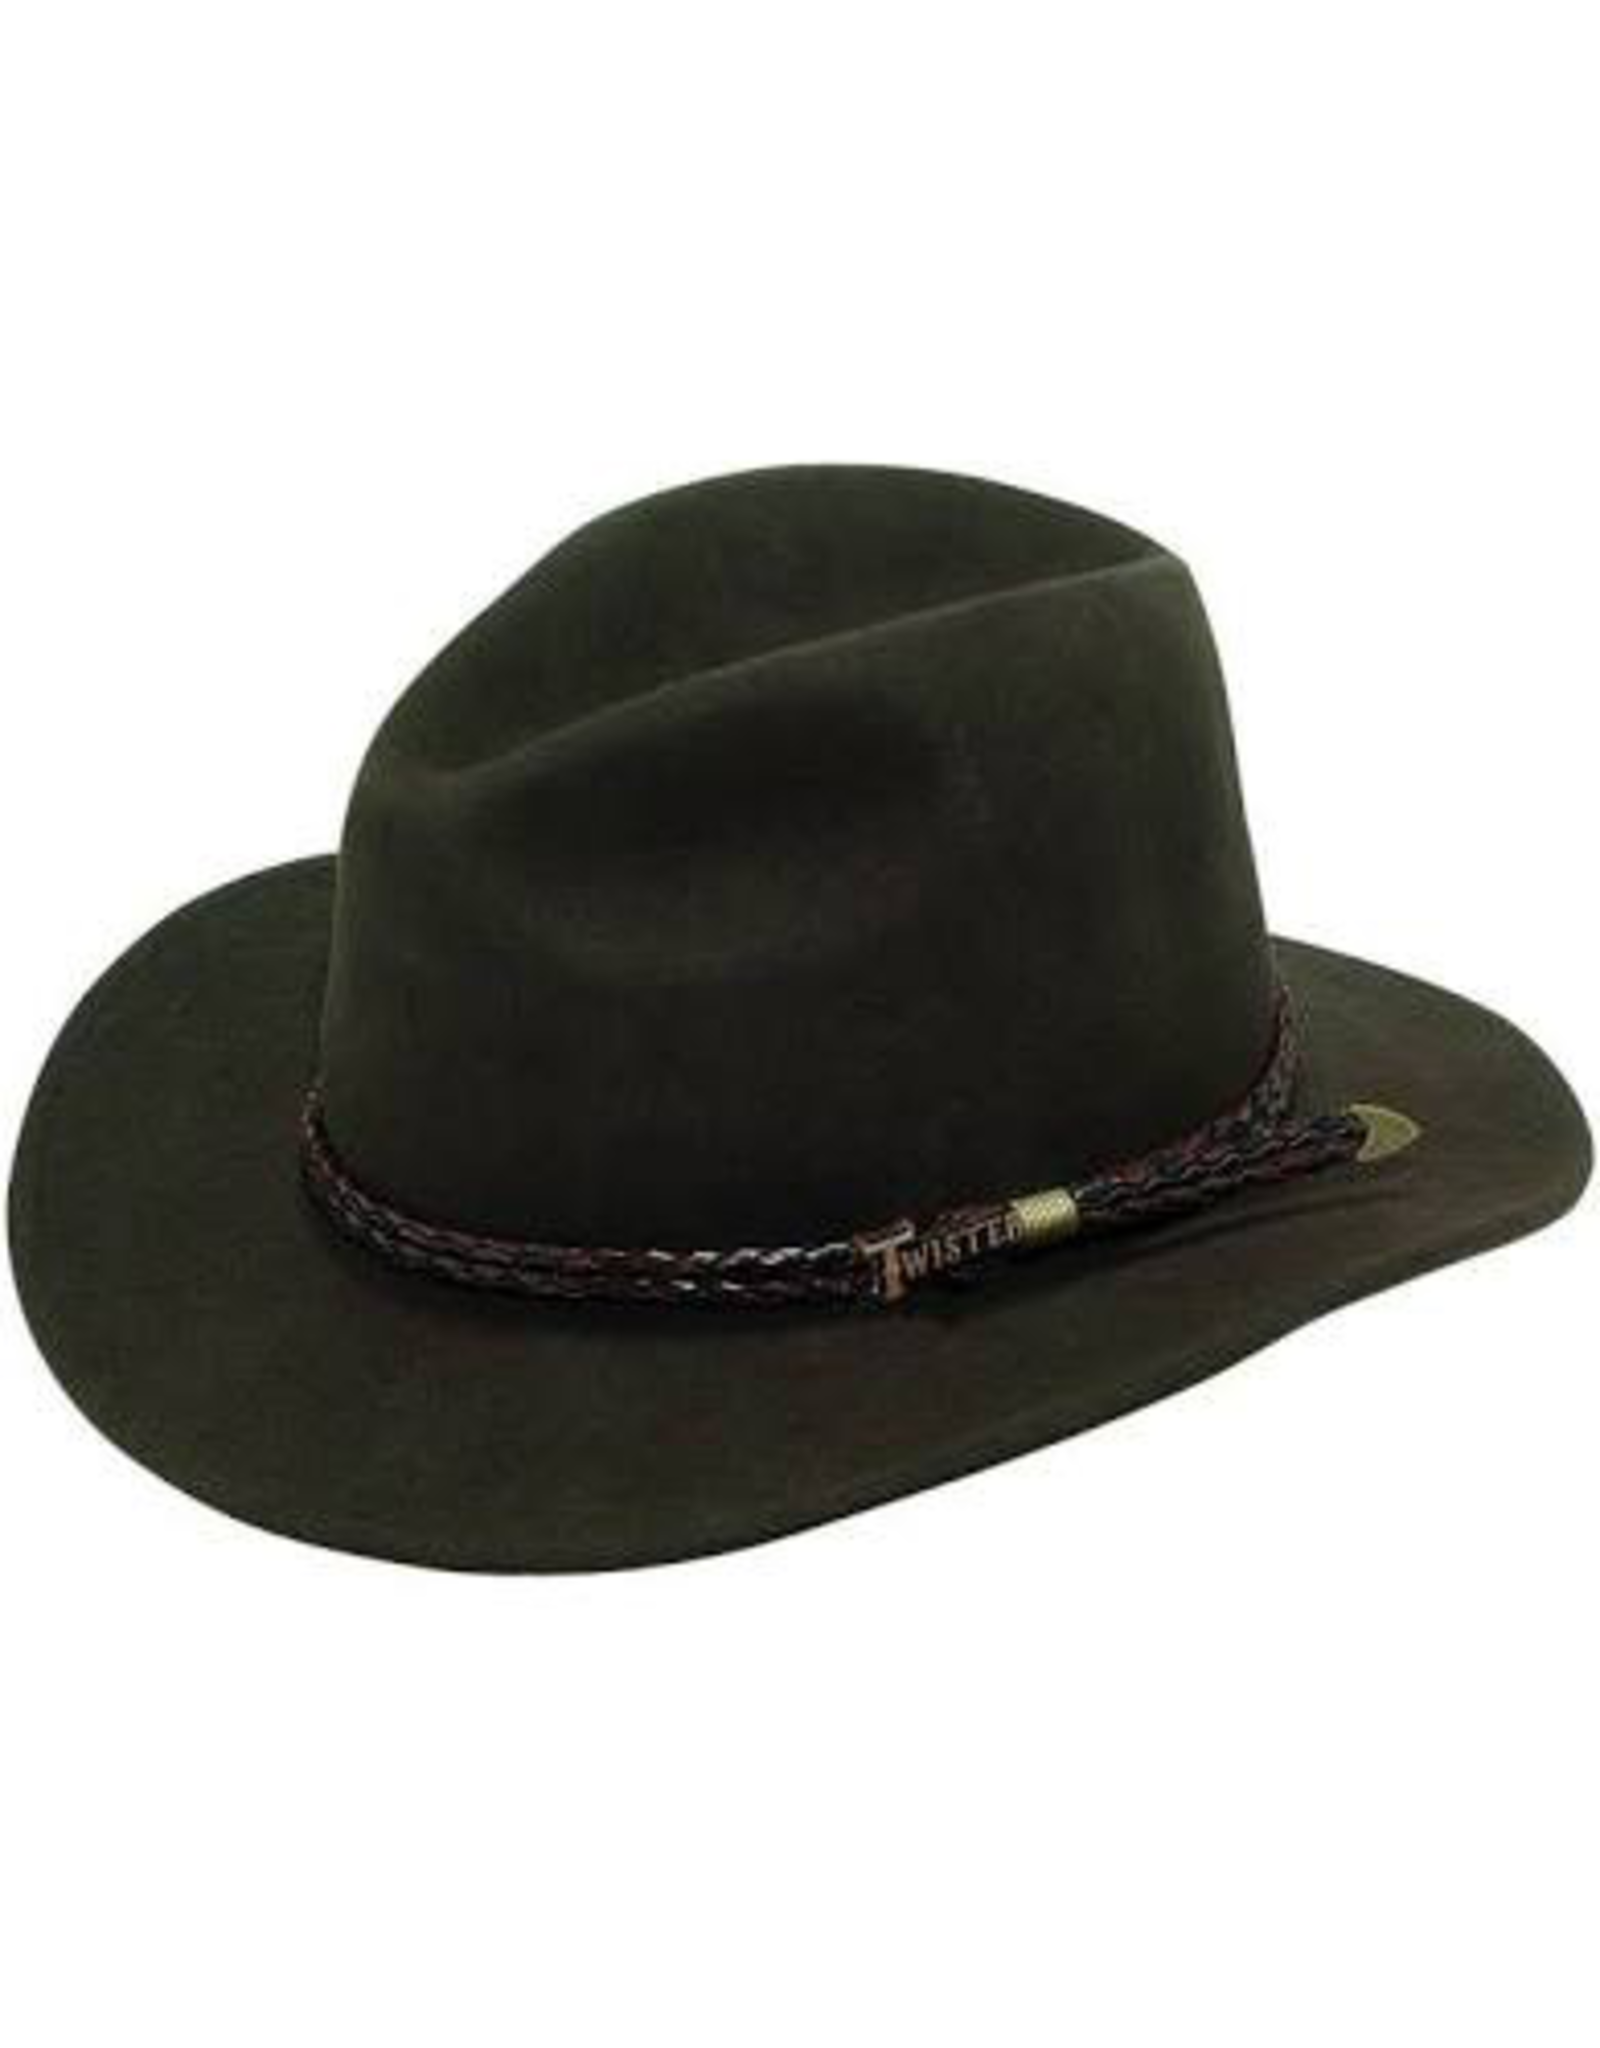 Hats Twister 72114-01/02<br /> Omaha Crushable